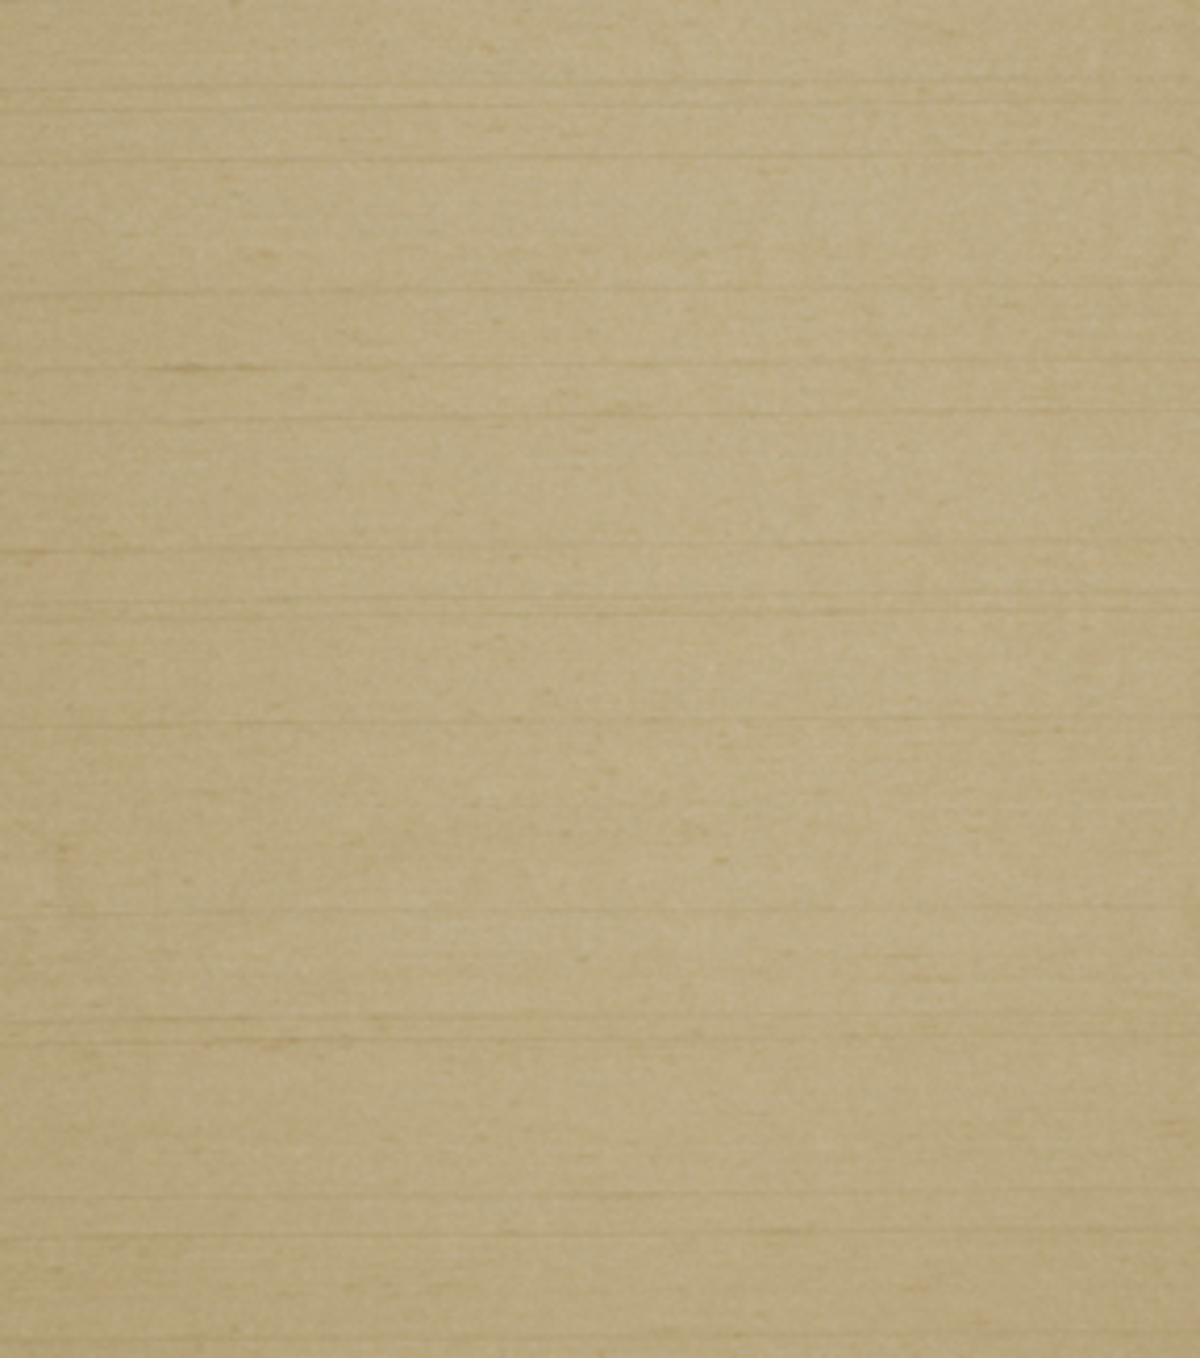 Home Decor 8\u0022x8\u0022 Fabric Swatch-Signature Series Bravo Camel